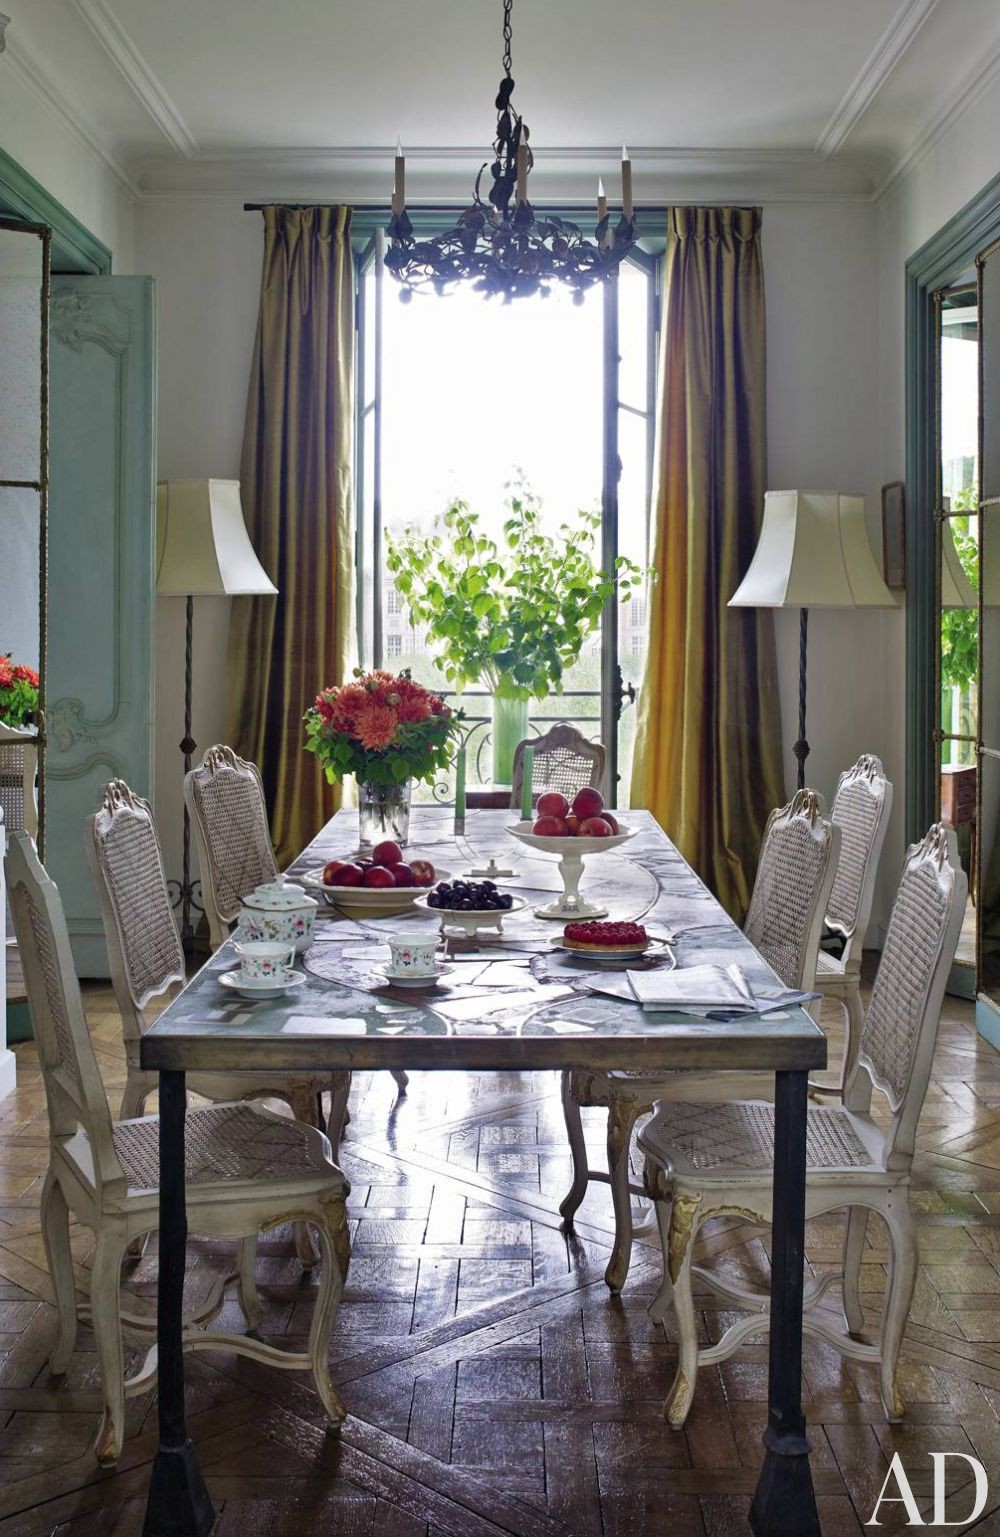 Traditional Dining Room by Jacques Garcia in Paris, France